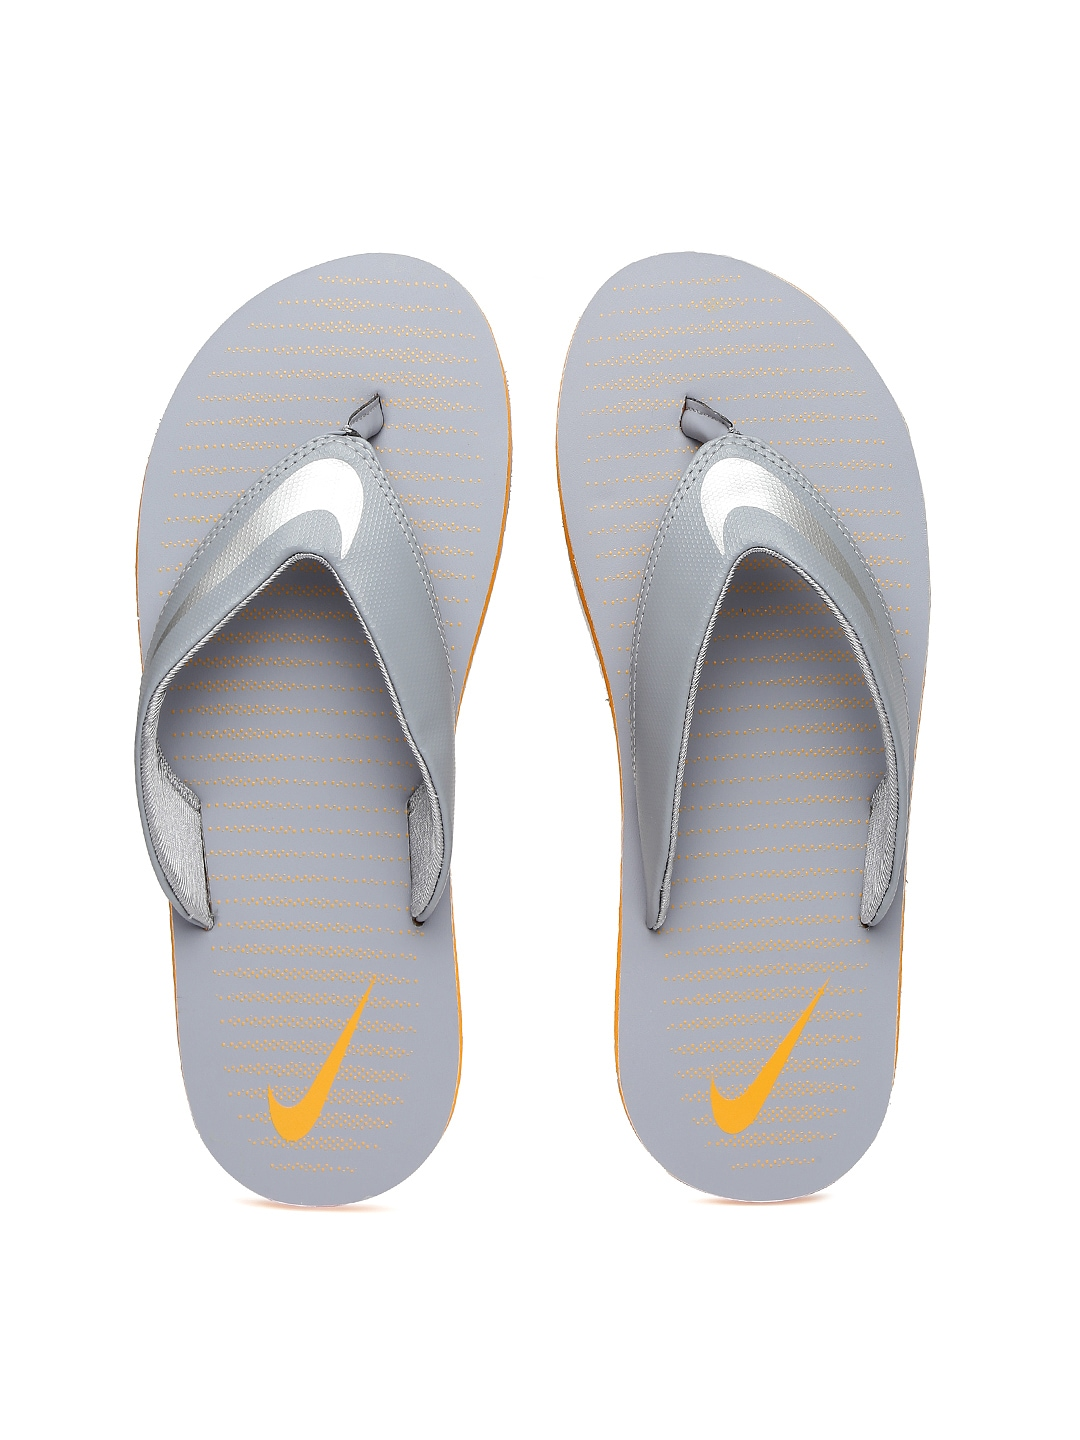 9395c5330 Nike Chroma Thong Flip Flops - Buy Nike Chroma Thong Flip Flops online in  India